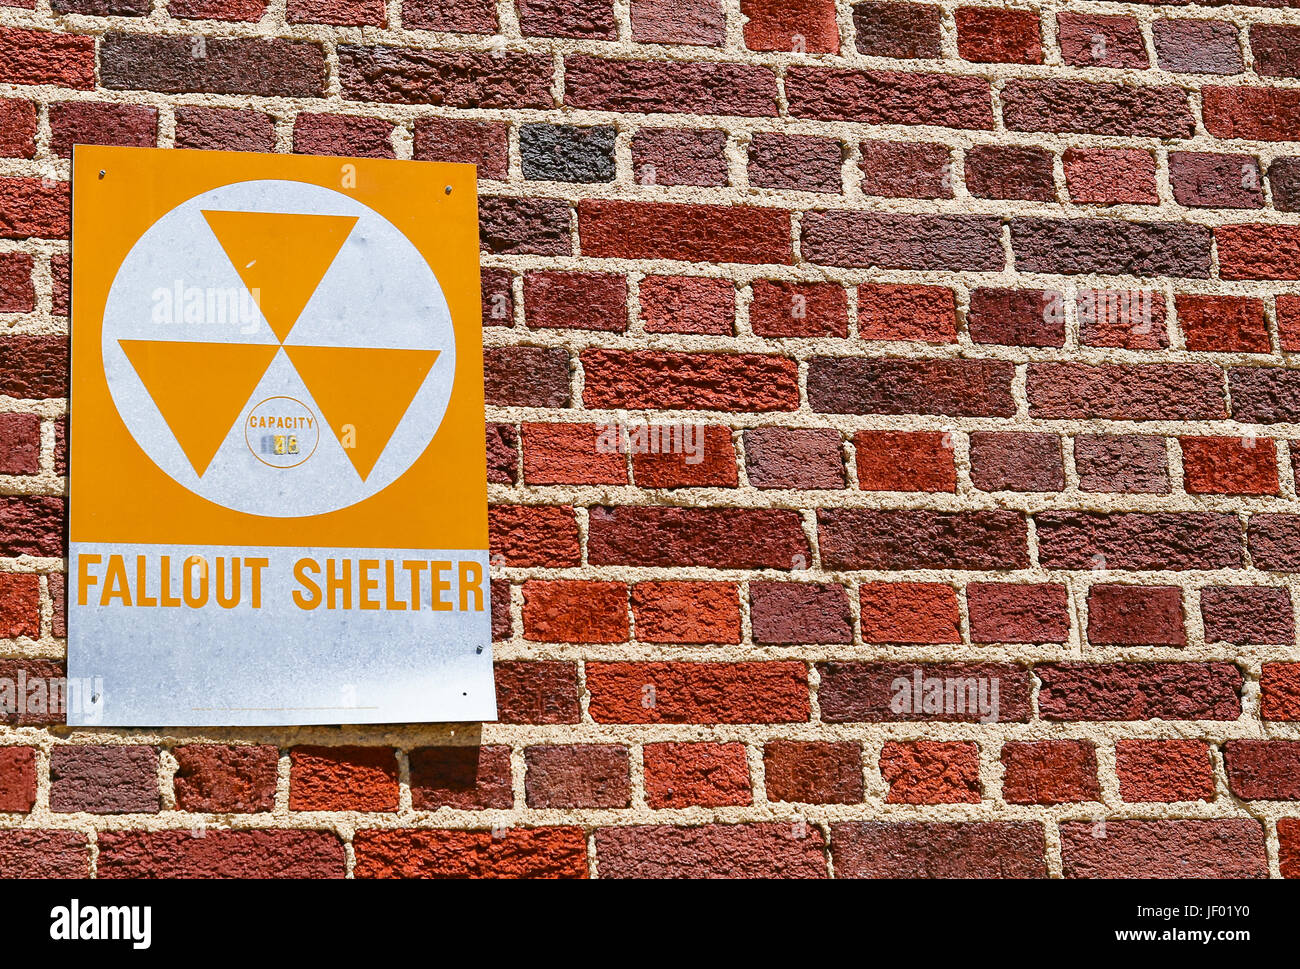 Fallout Shelter in Dodge City Stock Photo